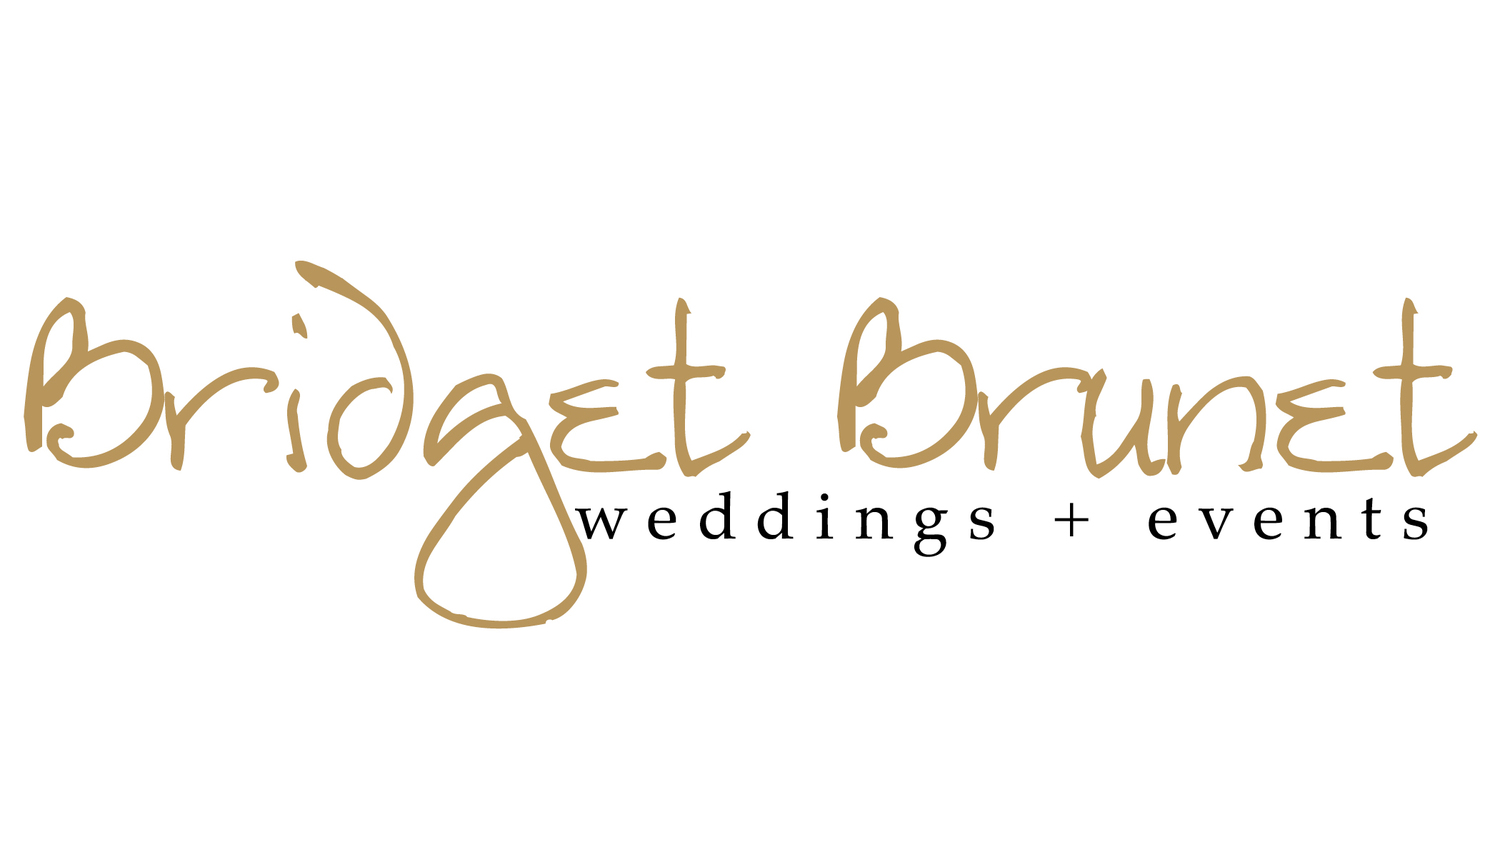 Bridget Brunet Weddings + Events